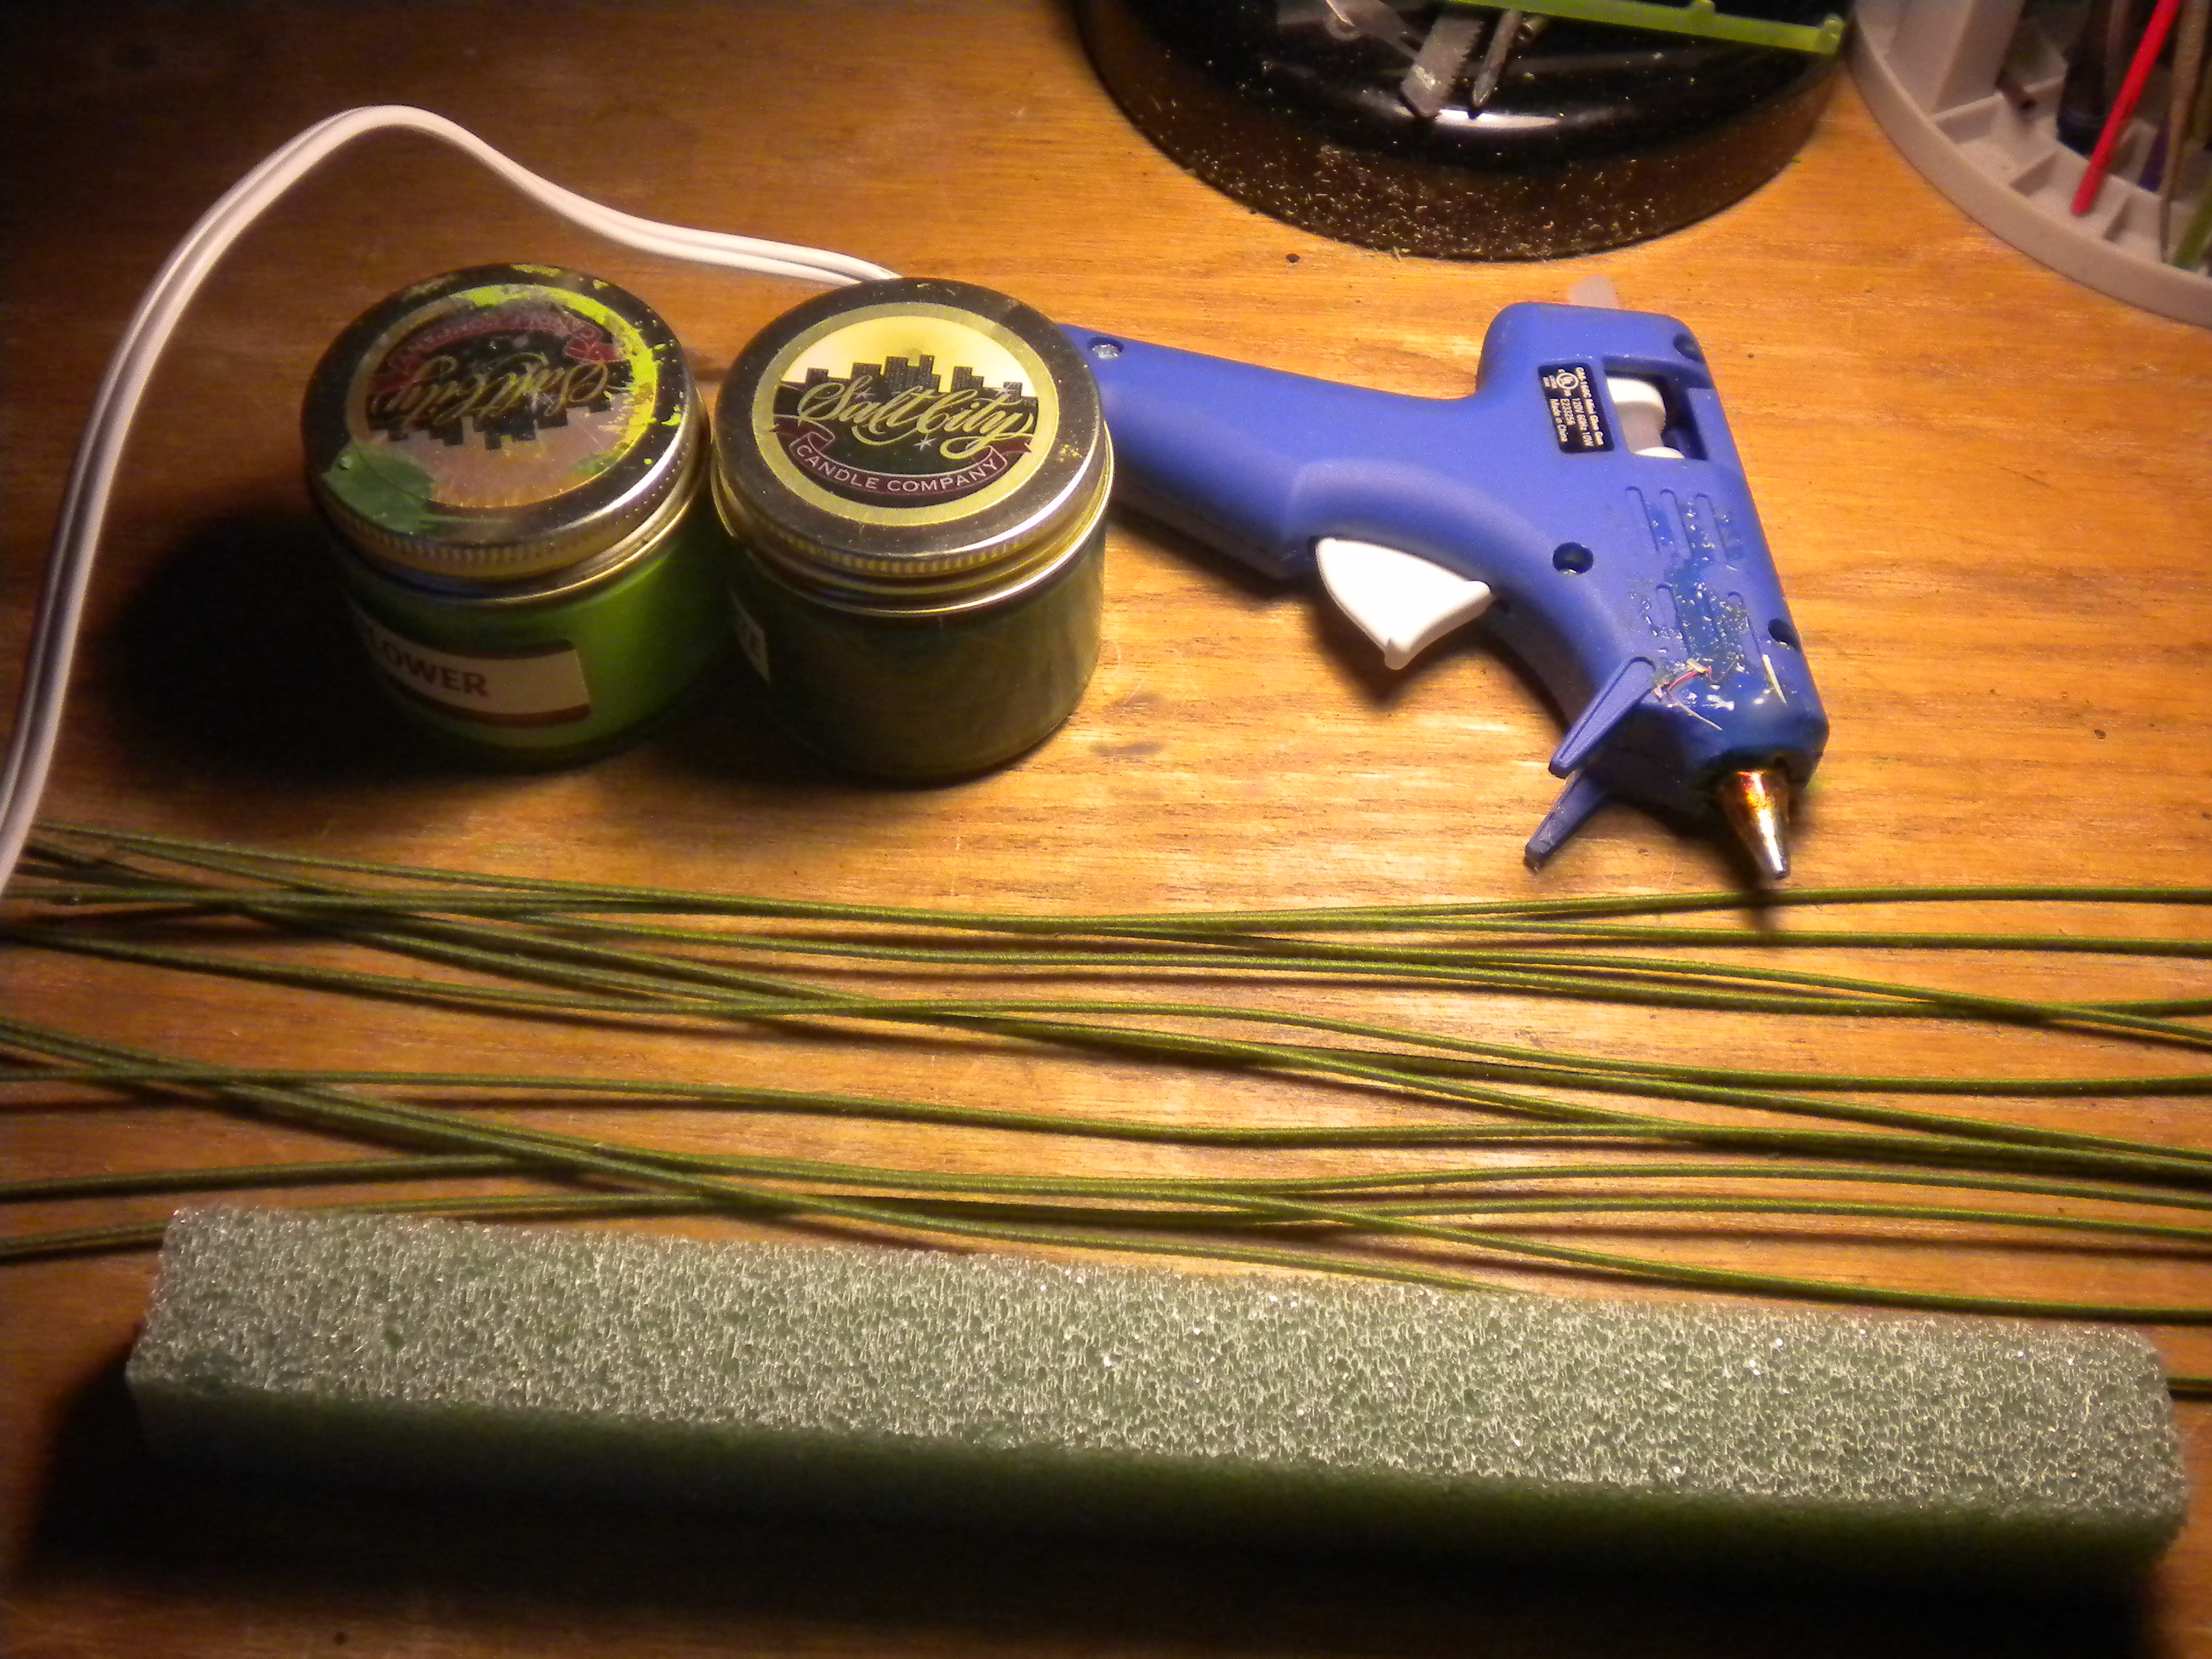 Engaging Glue Floral Wire Tree Trunks Paint Making Styrofoam Trees Wargaming Site How To Glue Styrofoam To Cement How To Glue Styrofoam Balls Toger houzz-02 How To Glue Styrofoam